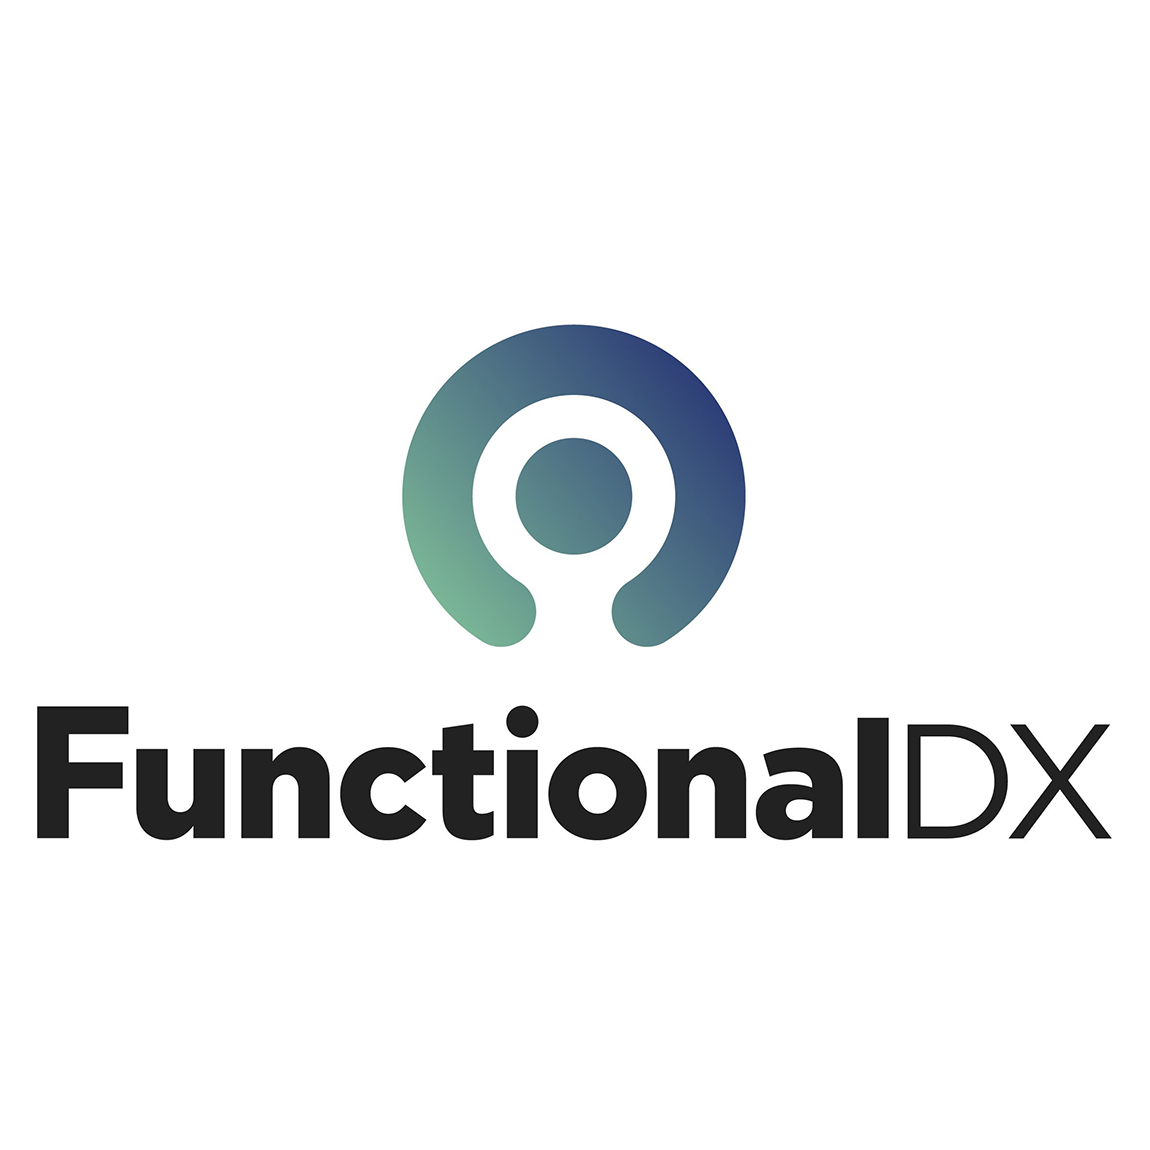 Functional DX